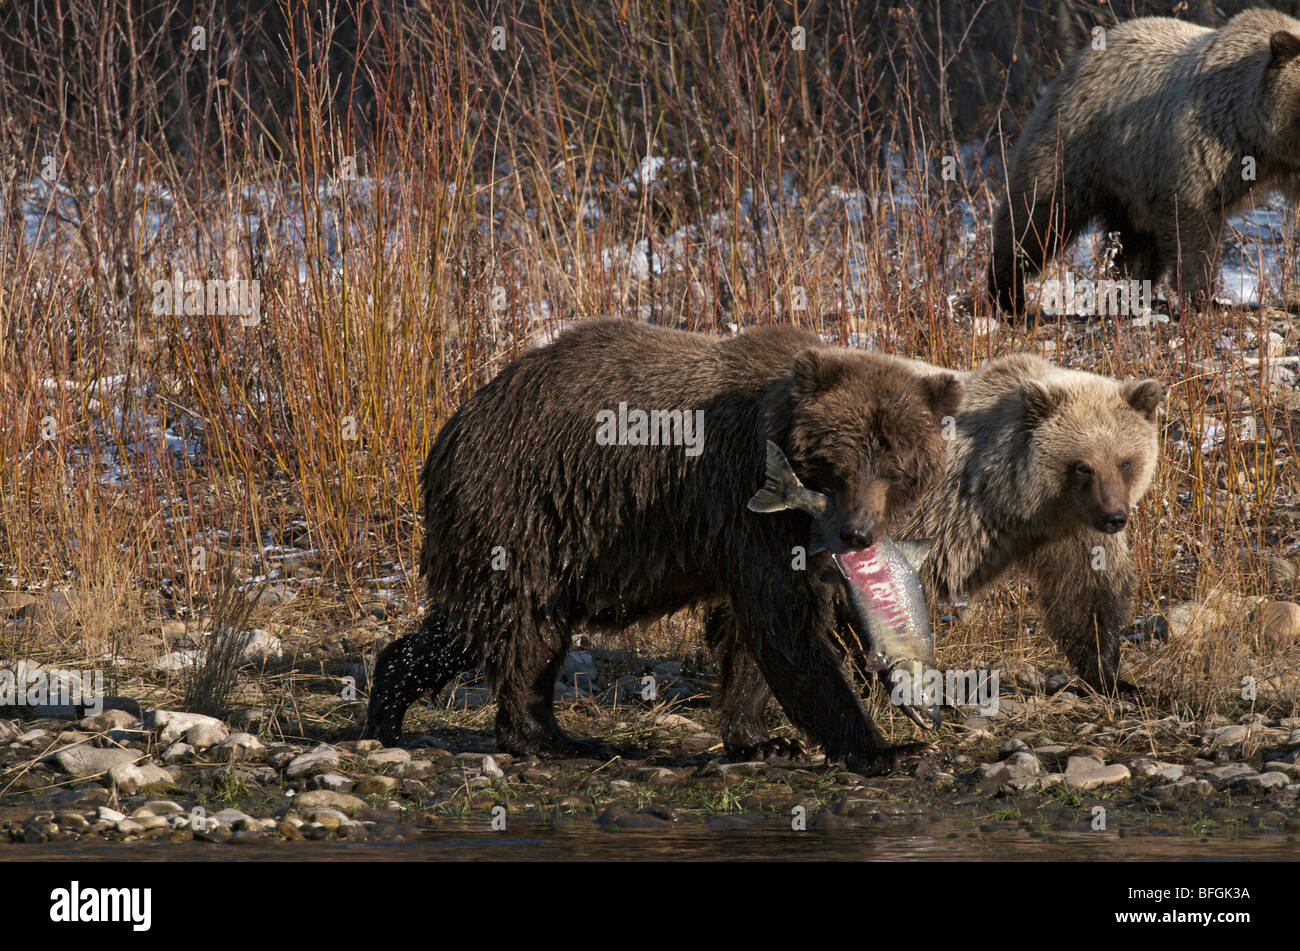 Grizzly Bear (Ursus arctos), Chum Salmon in her mouth, Fishing Branch River, Ni'iinlii Njik Ecological Reserve, - Stock Image